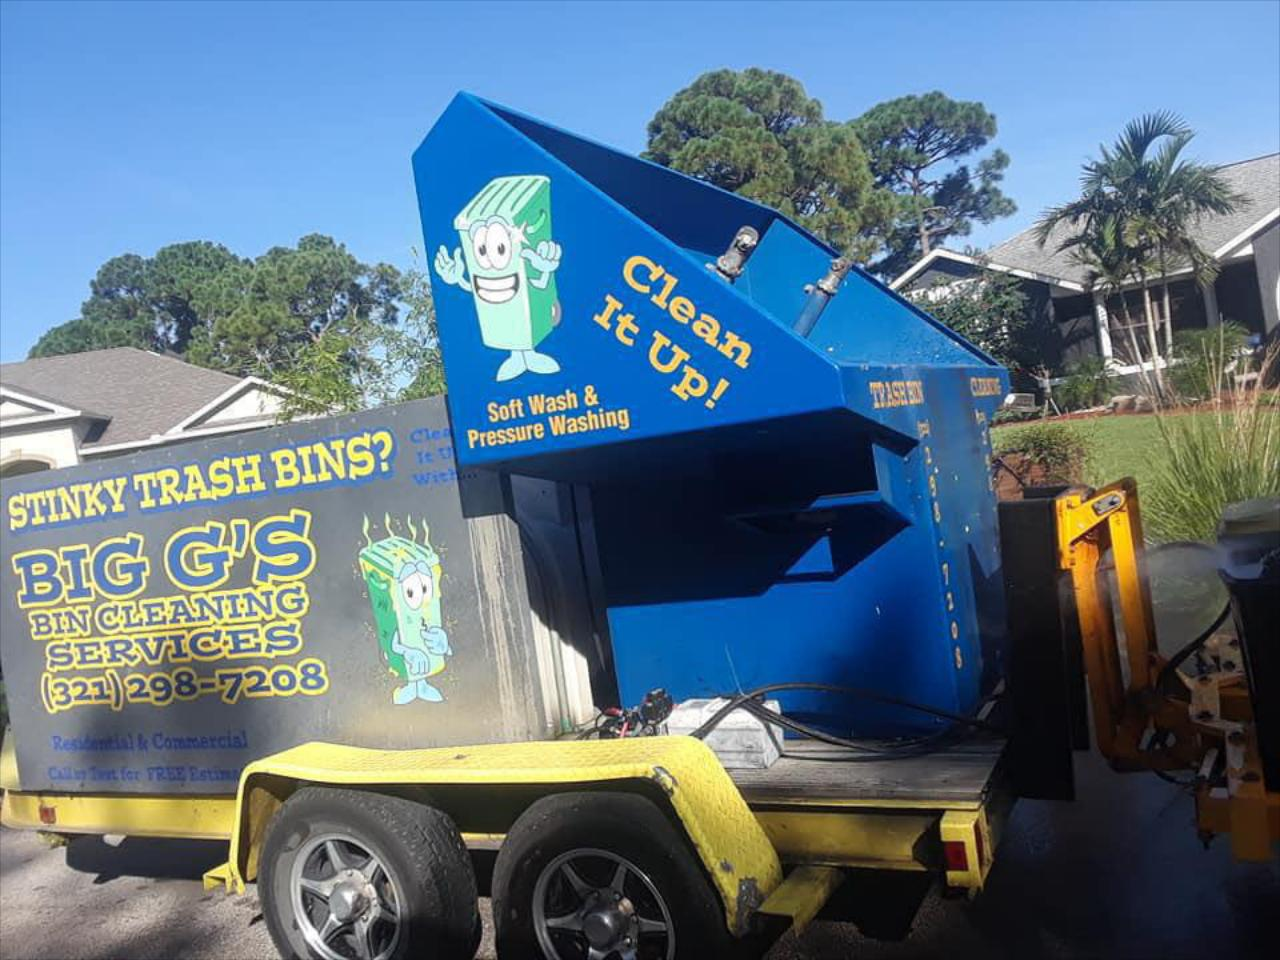 Dumpster Cleaning Services